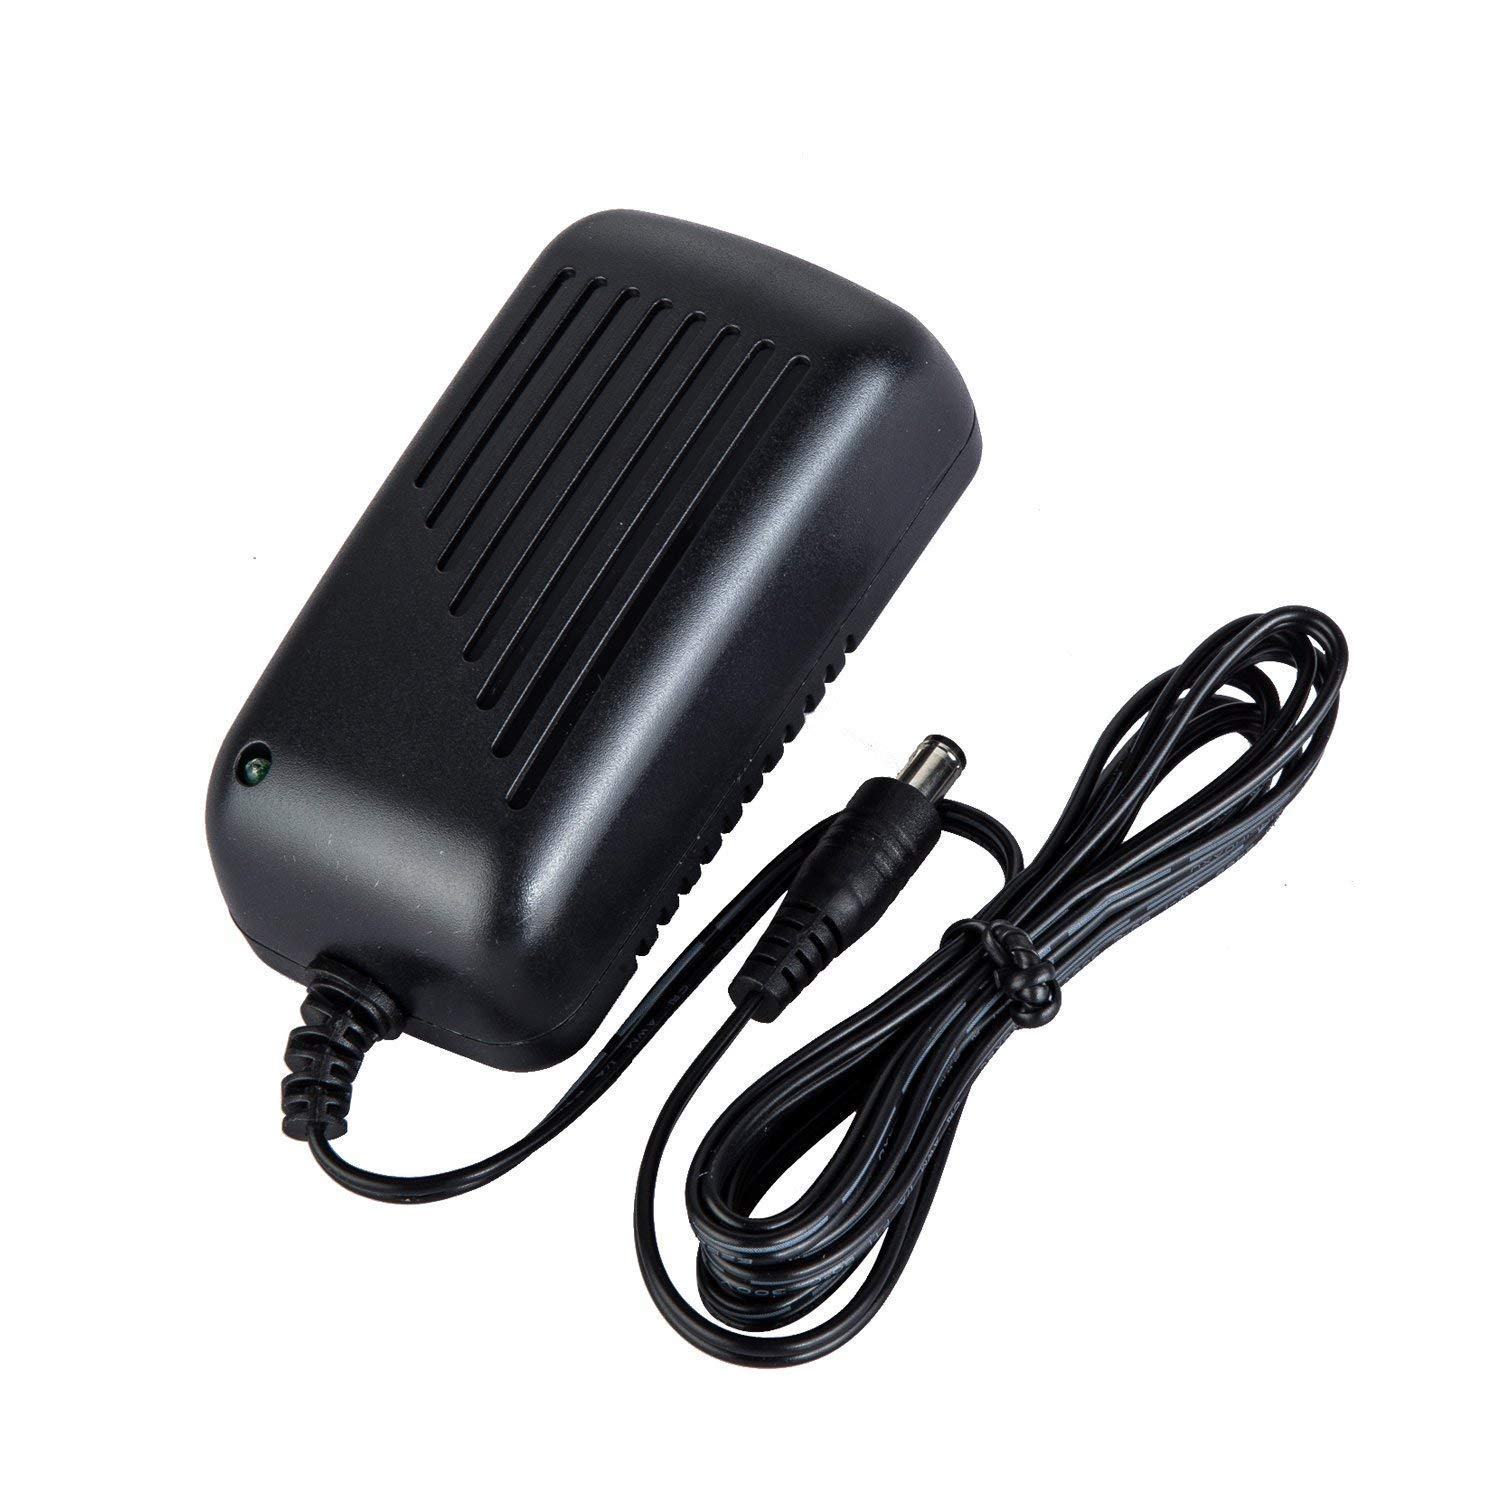 CANAVIS 12V 2A Power Supply Adapter, Camera DC Power Adapter for Security CCTV Camera System NVR DVR